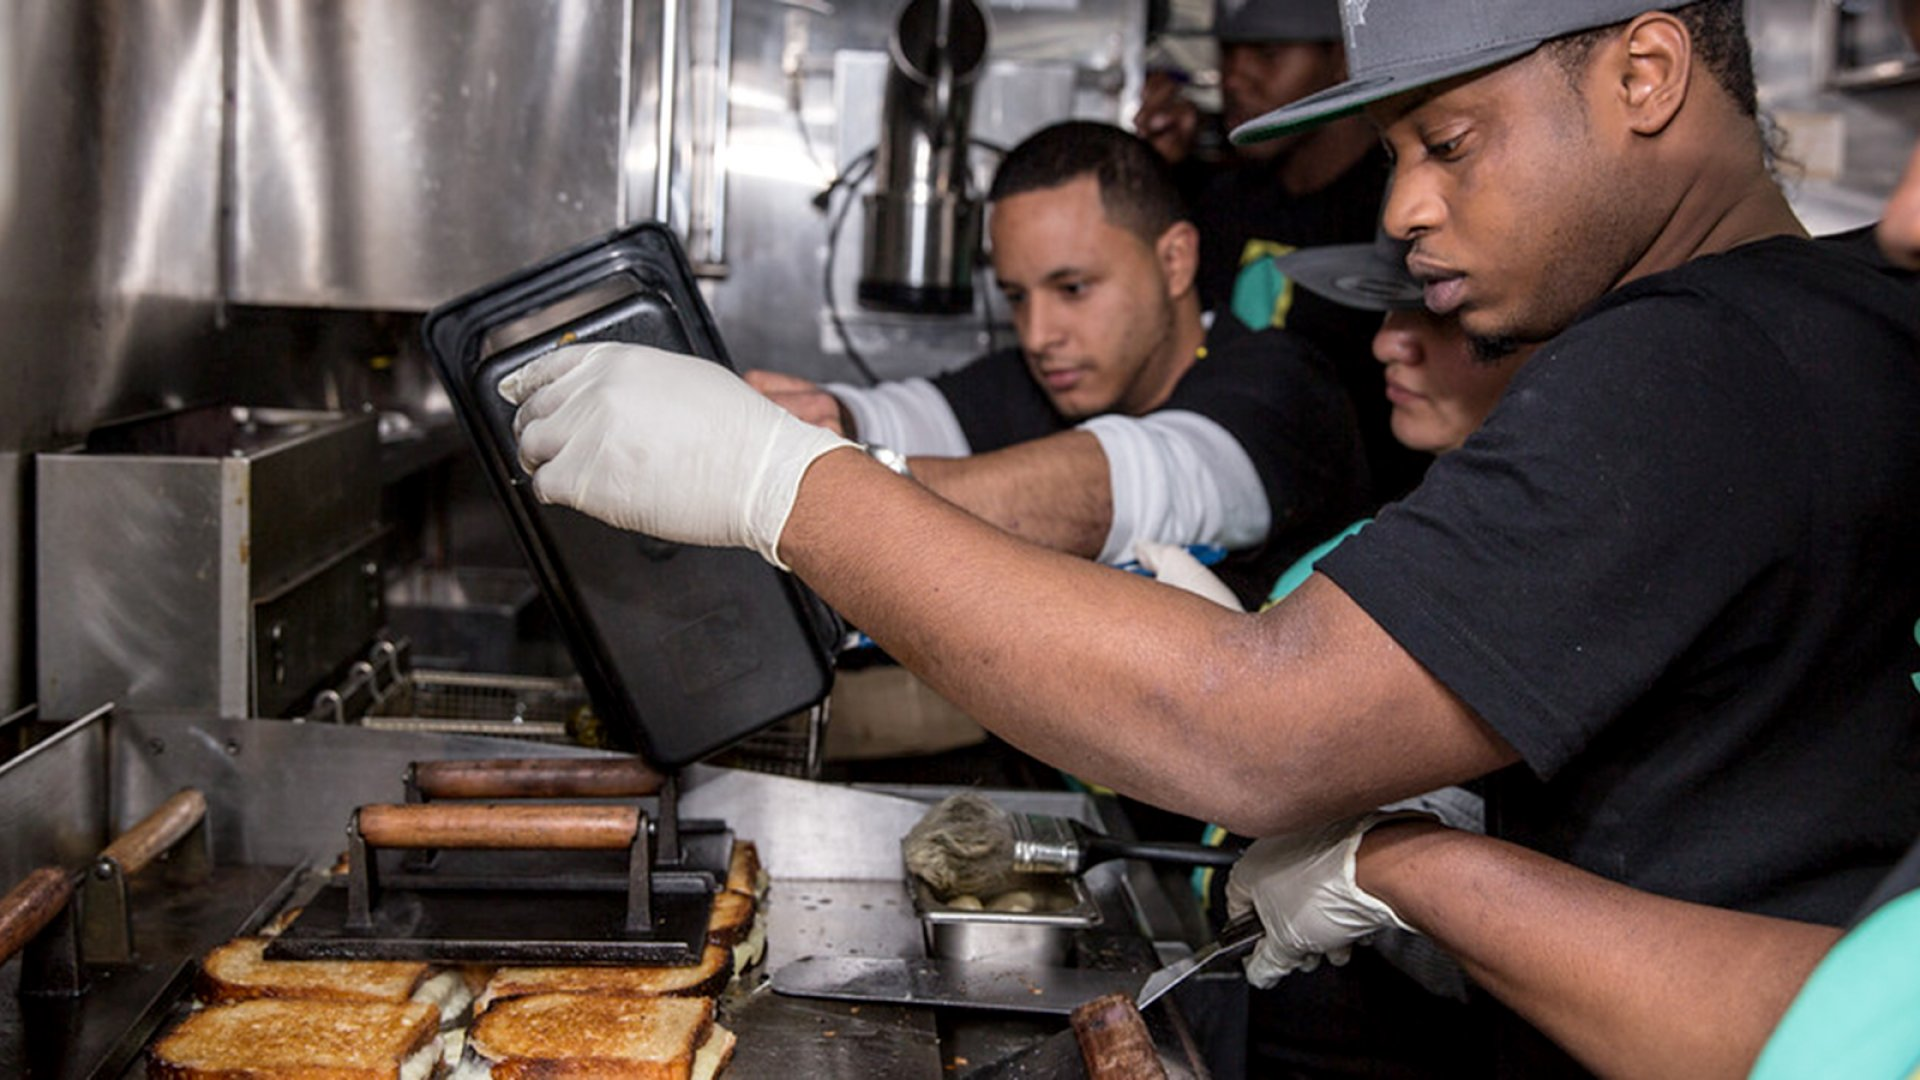 Echoing Green Global Fellow winner Drive Change uses the food truck industry to empower and employ recently incarcerated young people.